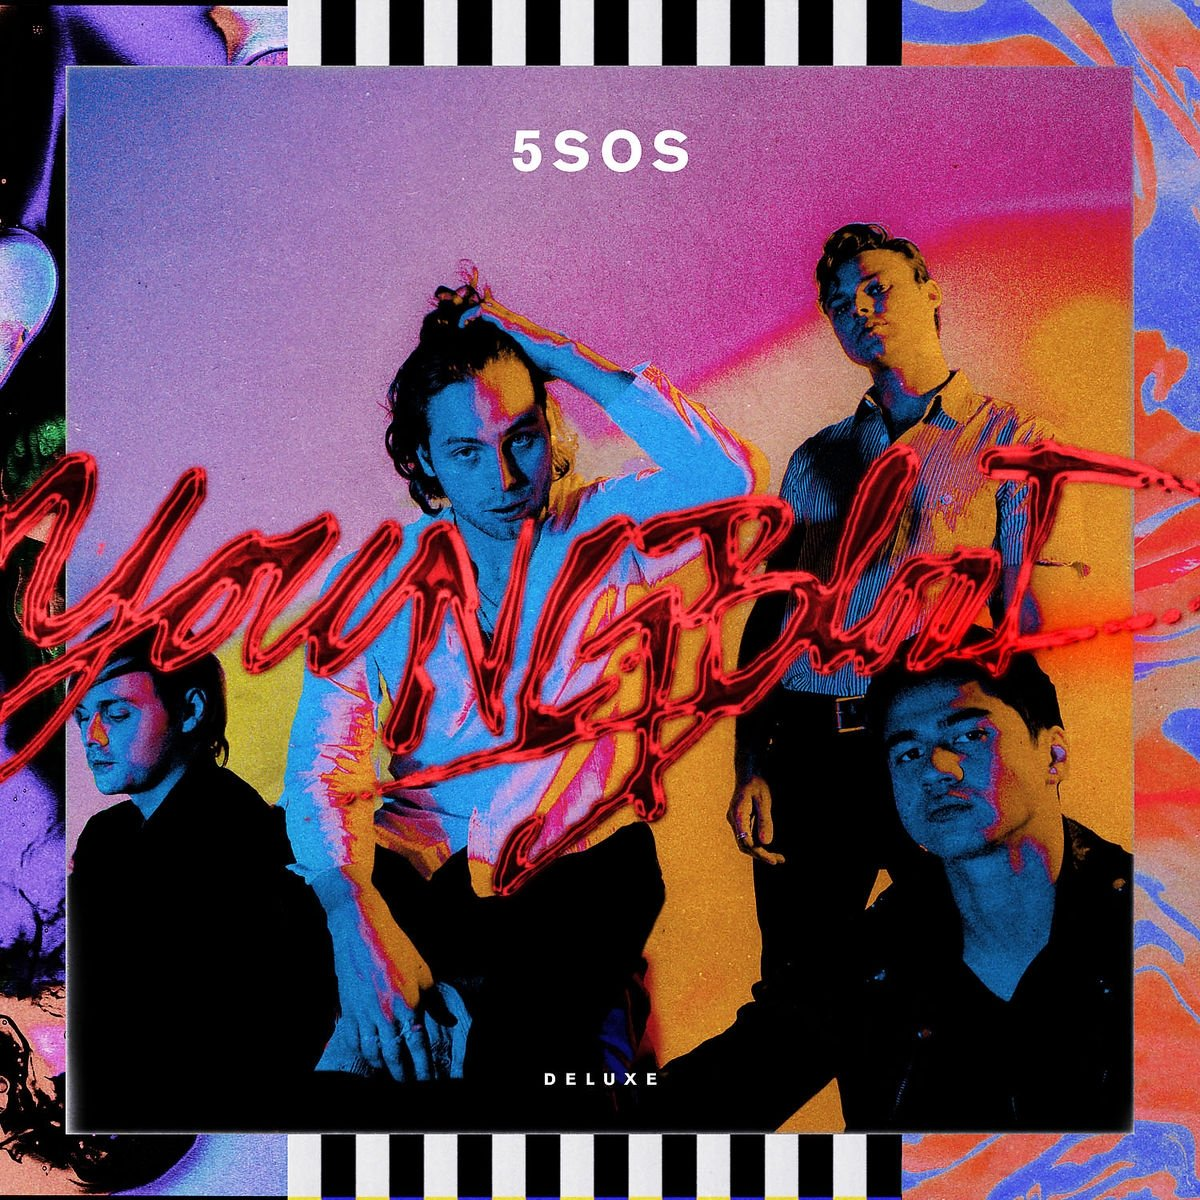 CD : 5 Seconds of Summer - Youngblood (Deluxe Edition)